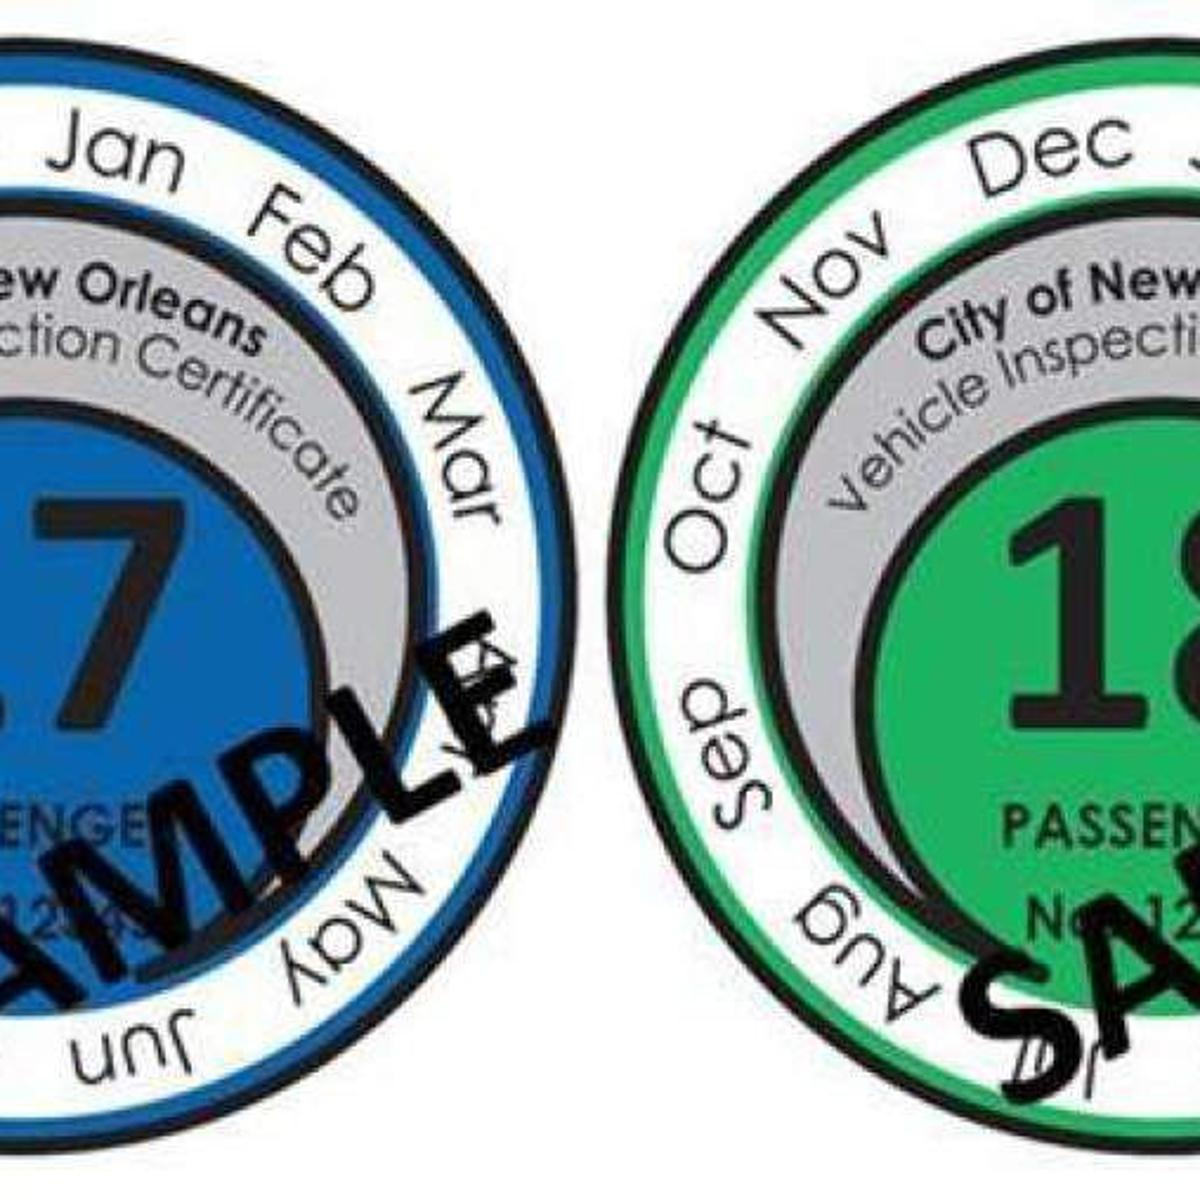 New Orleans drivers to get 2-year brake tags, with easy-to